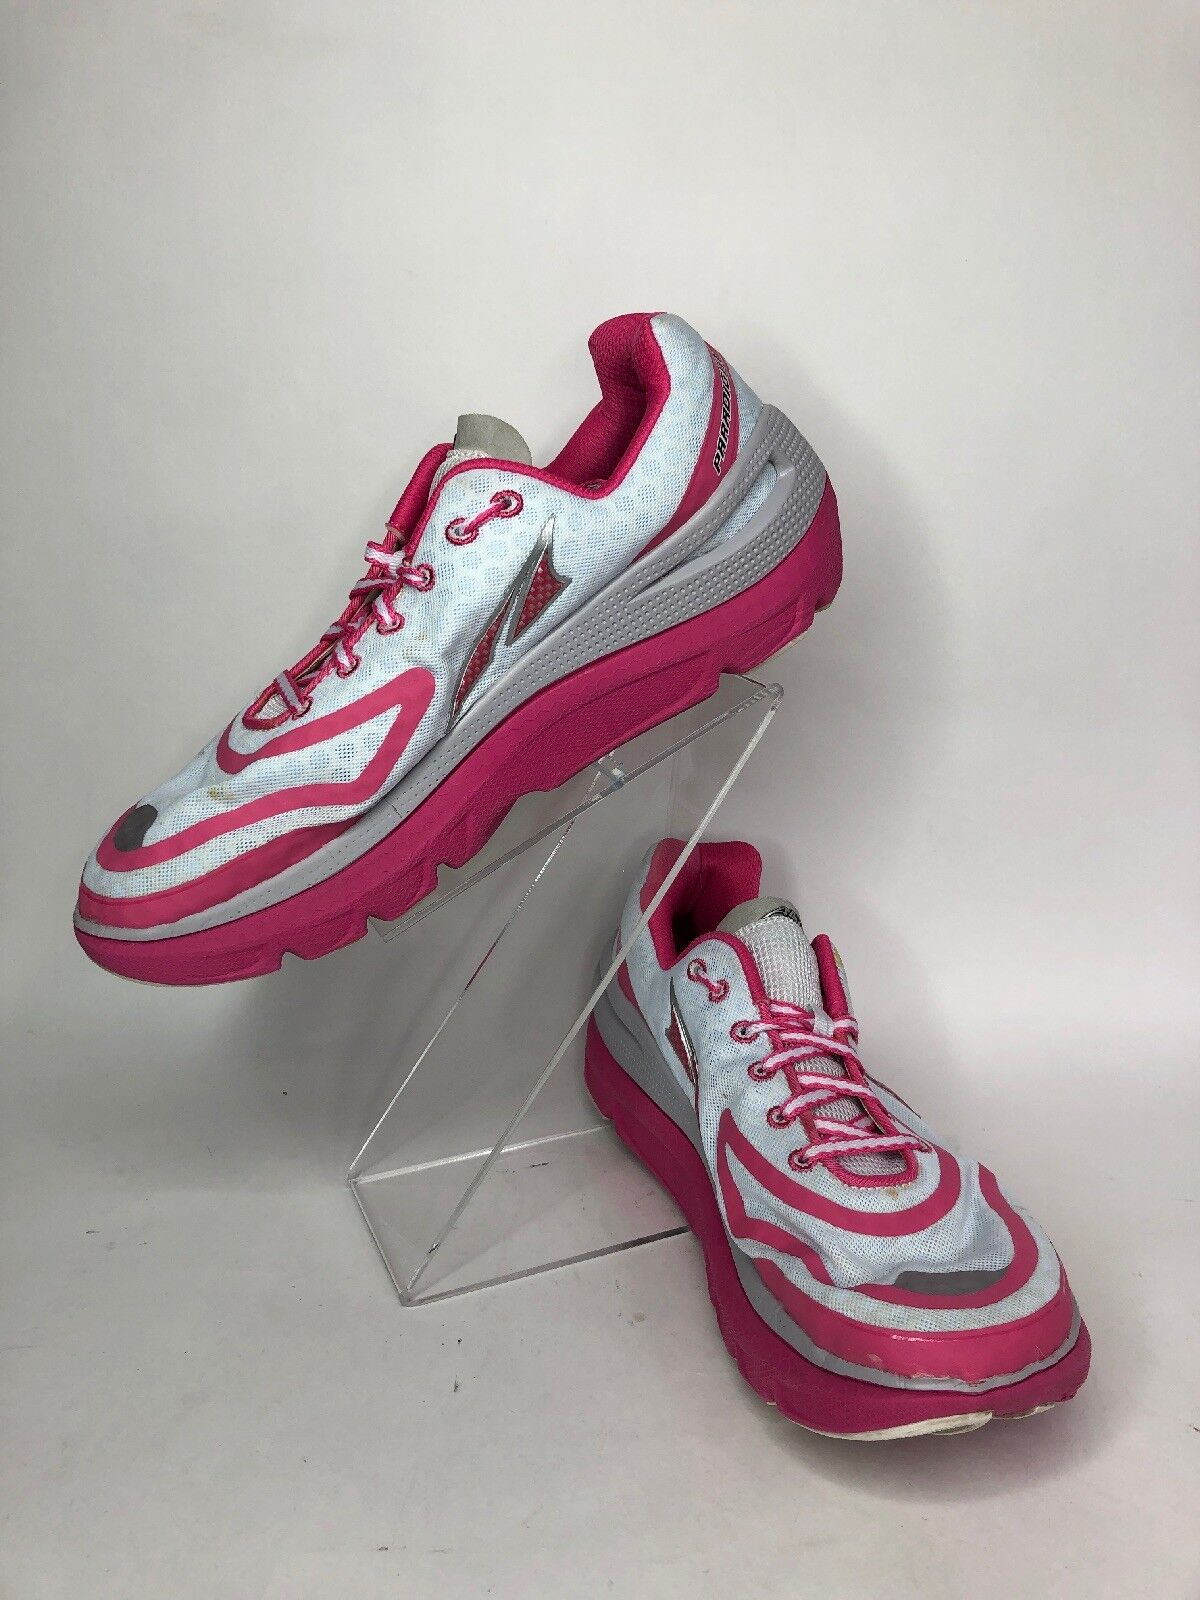 Altra Paradigm NRS Womens Trail Running shoes Size 9.5 Pink White A2435-1 B7